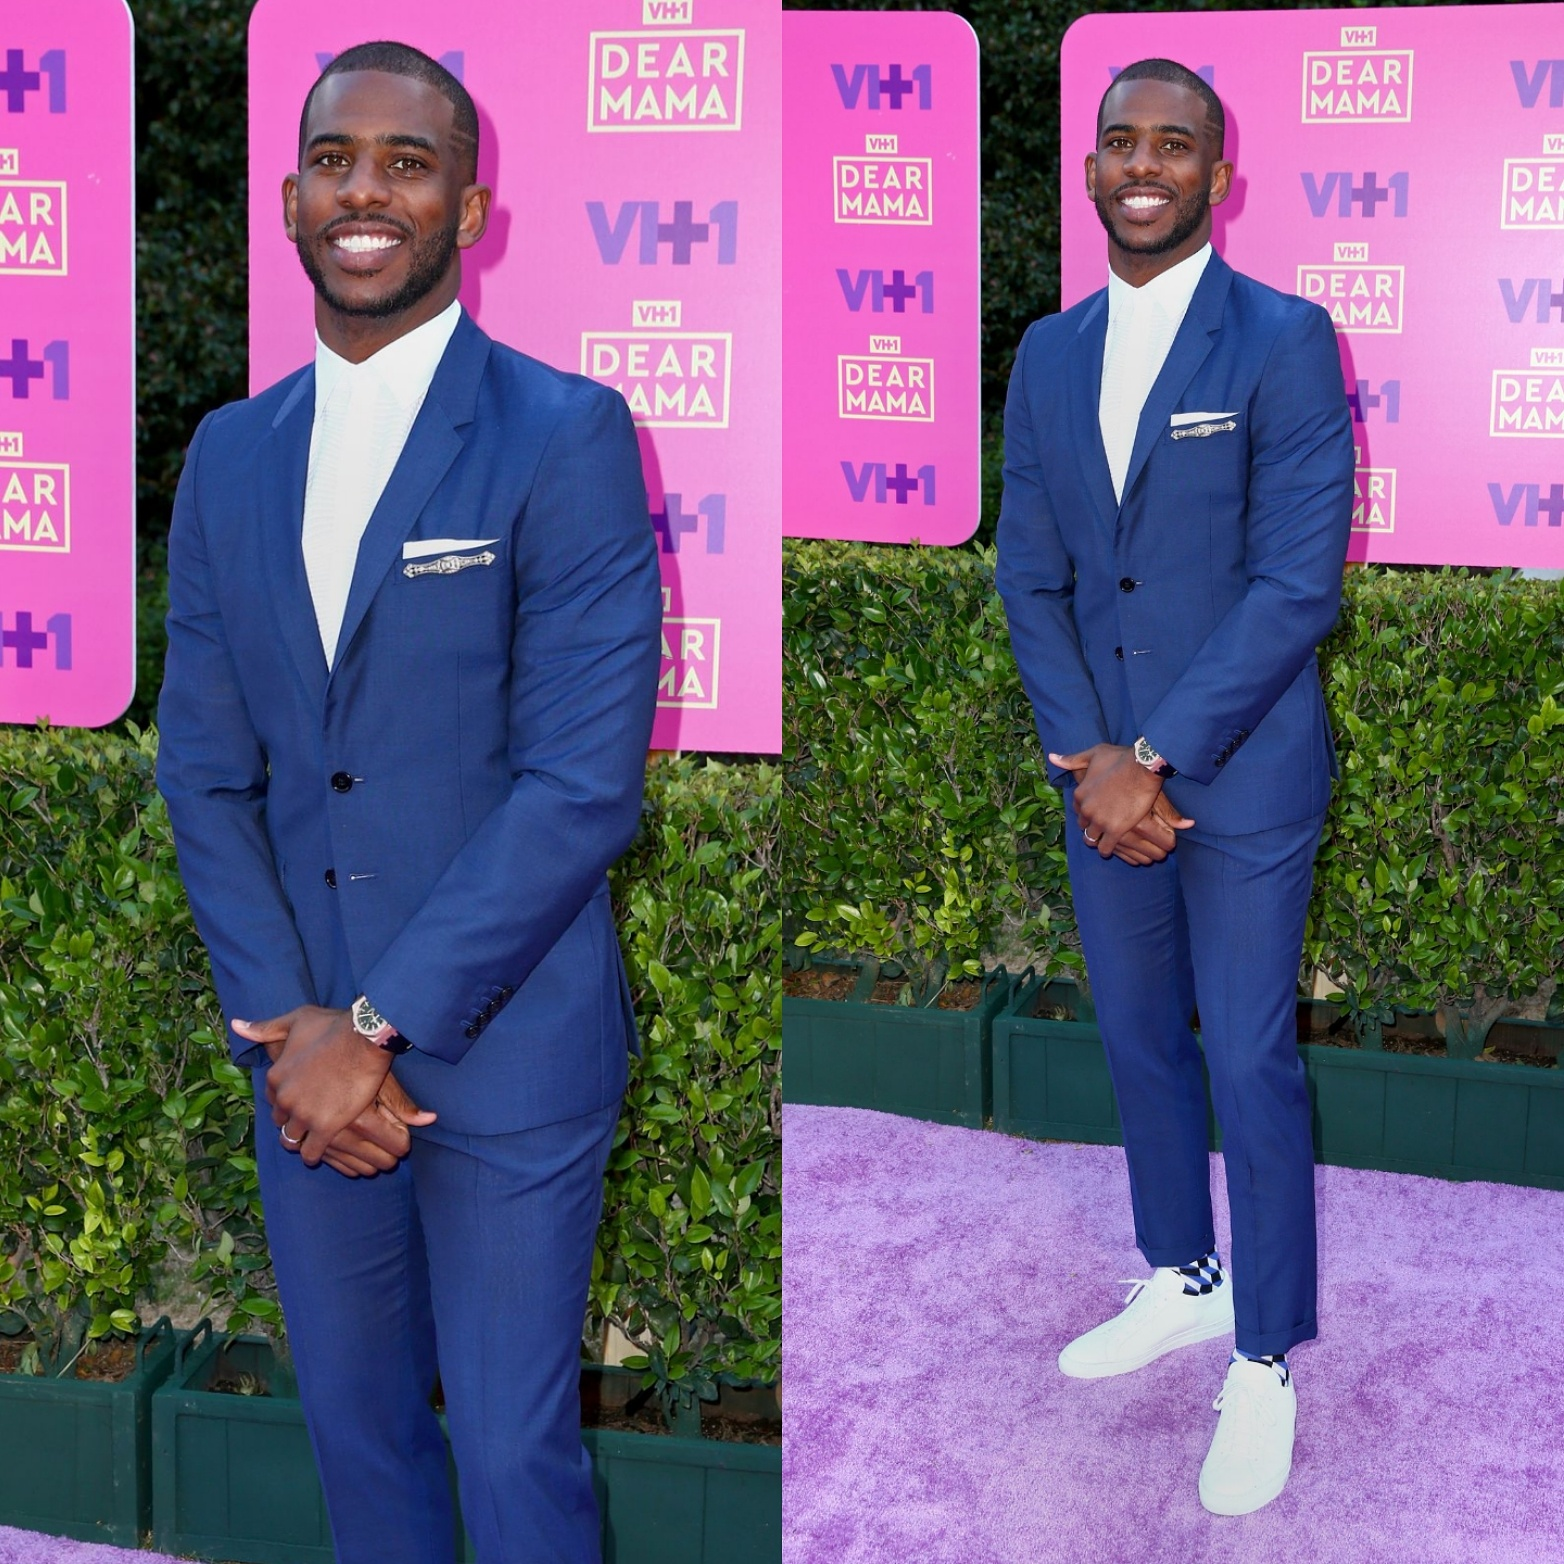 13cf8249ec24e9 Chris Paul's VH1 Dear Mama Paul Smith Suit